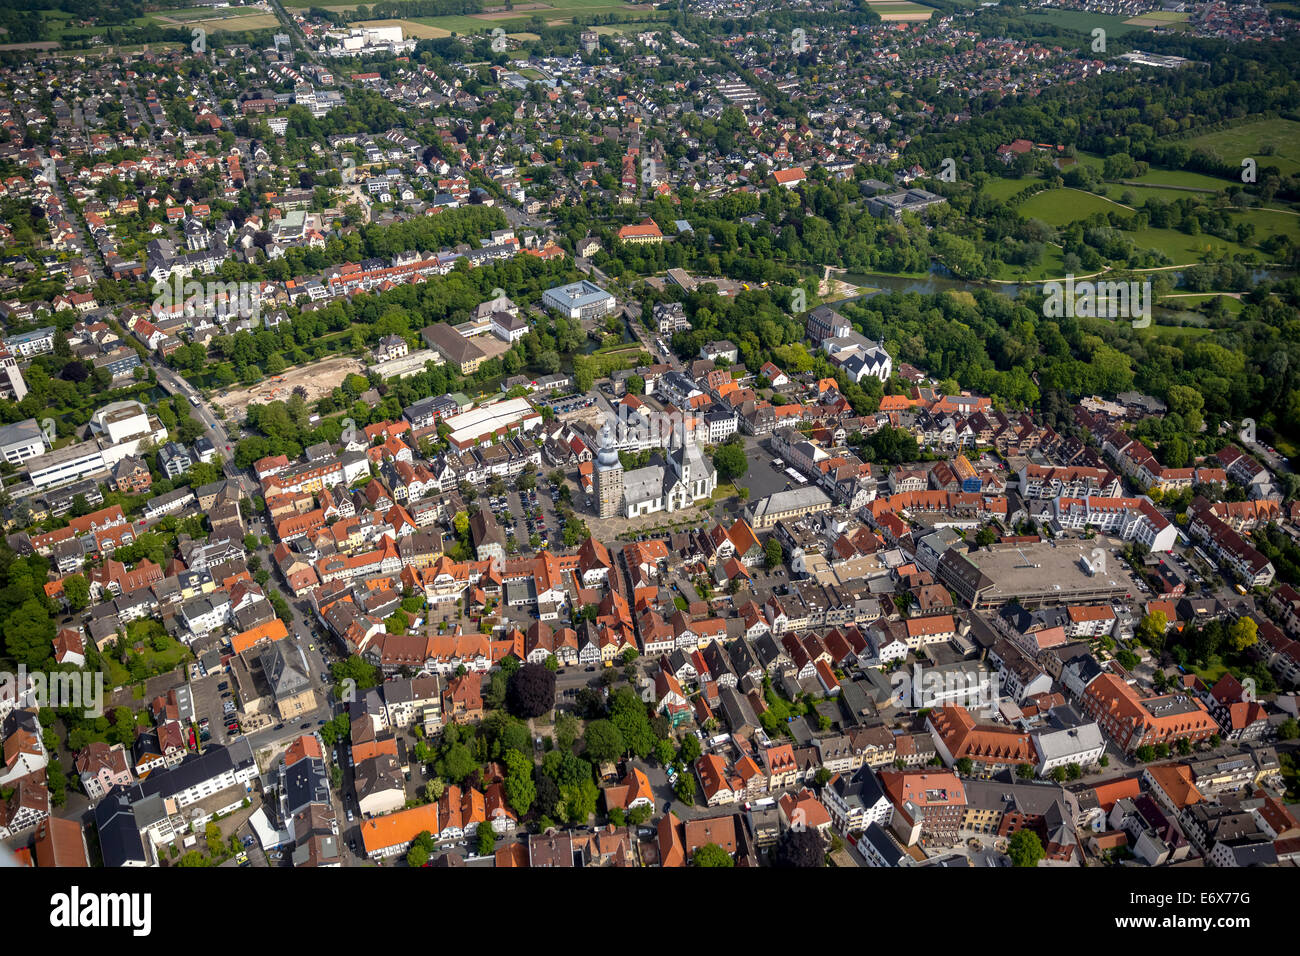 Aerial view, Große Marienkirche, St. Mary's Church, at the market square, Lippstadt, North Rhine-Westphalia, - Stock Image